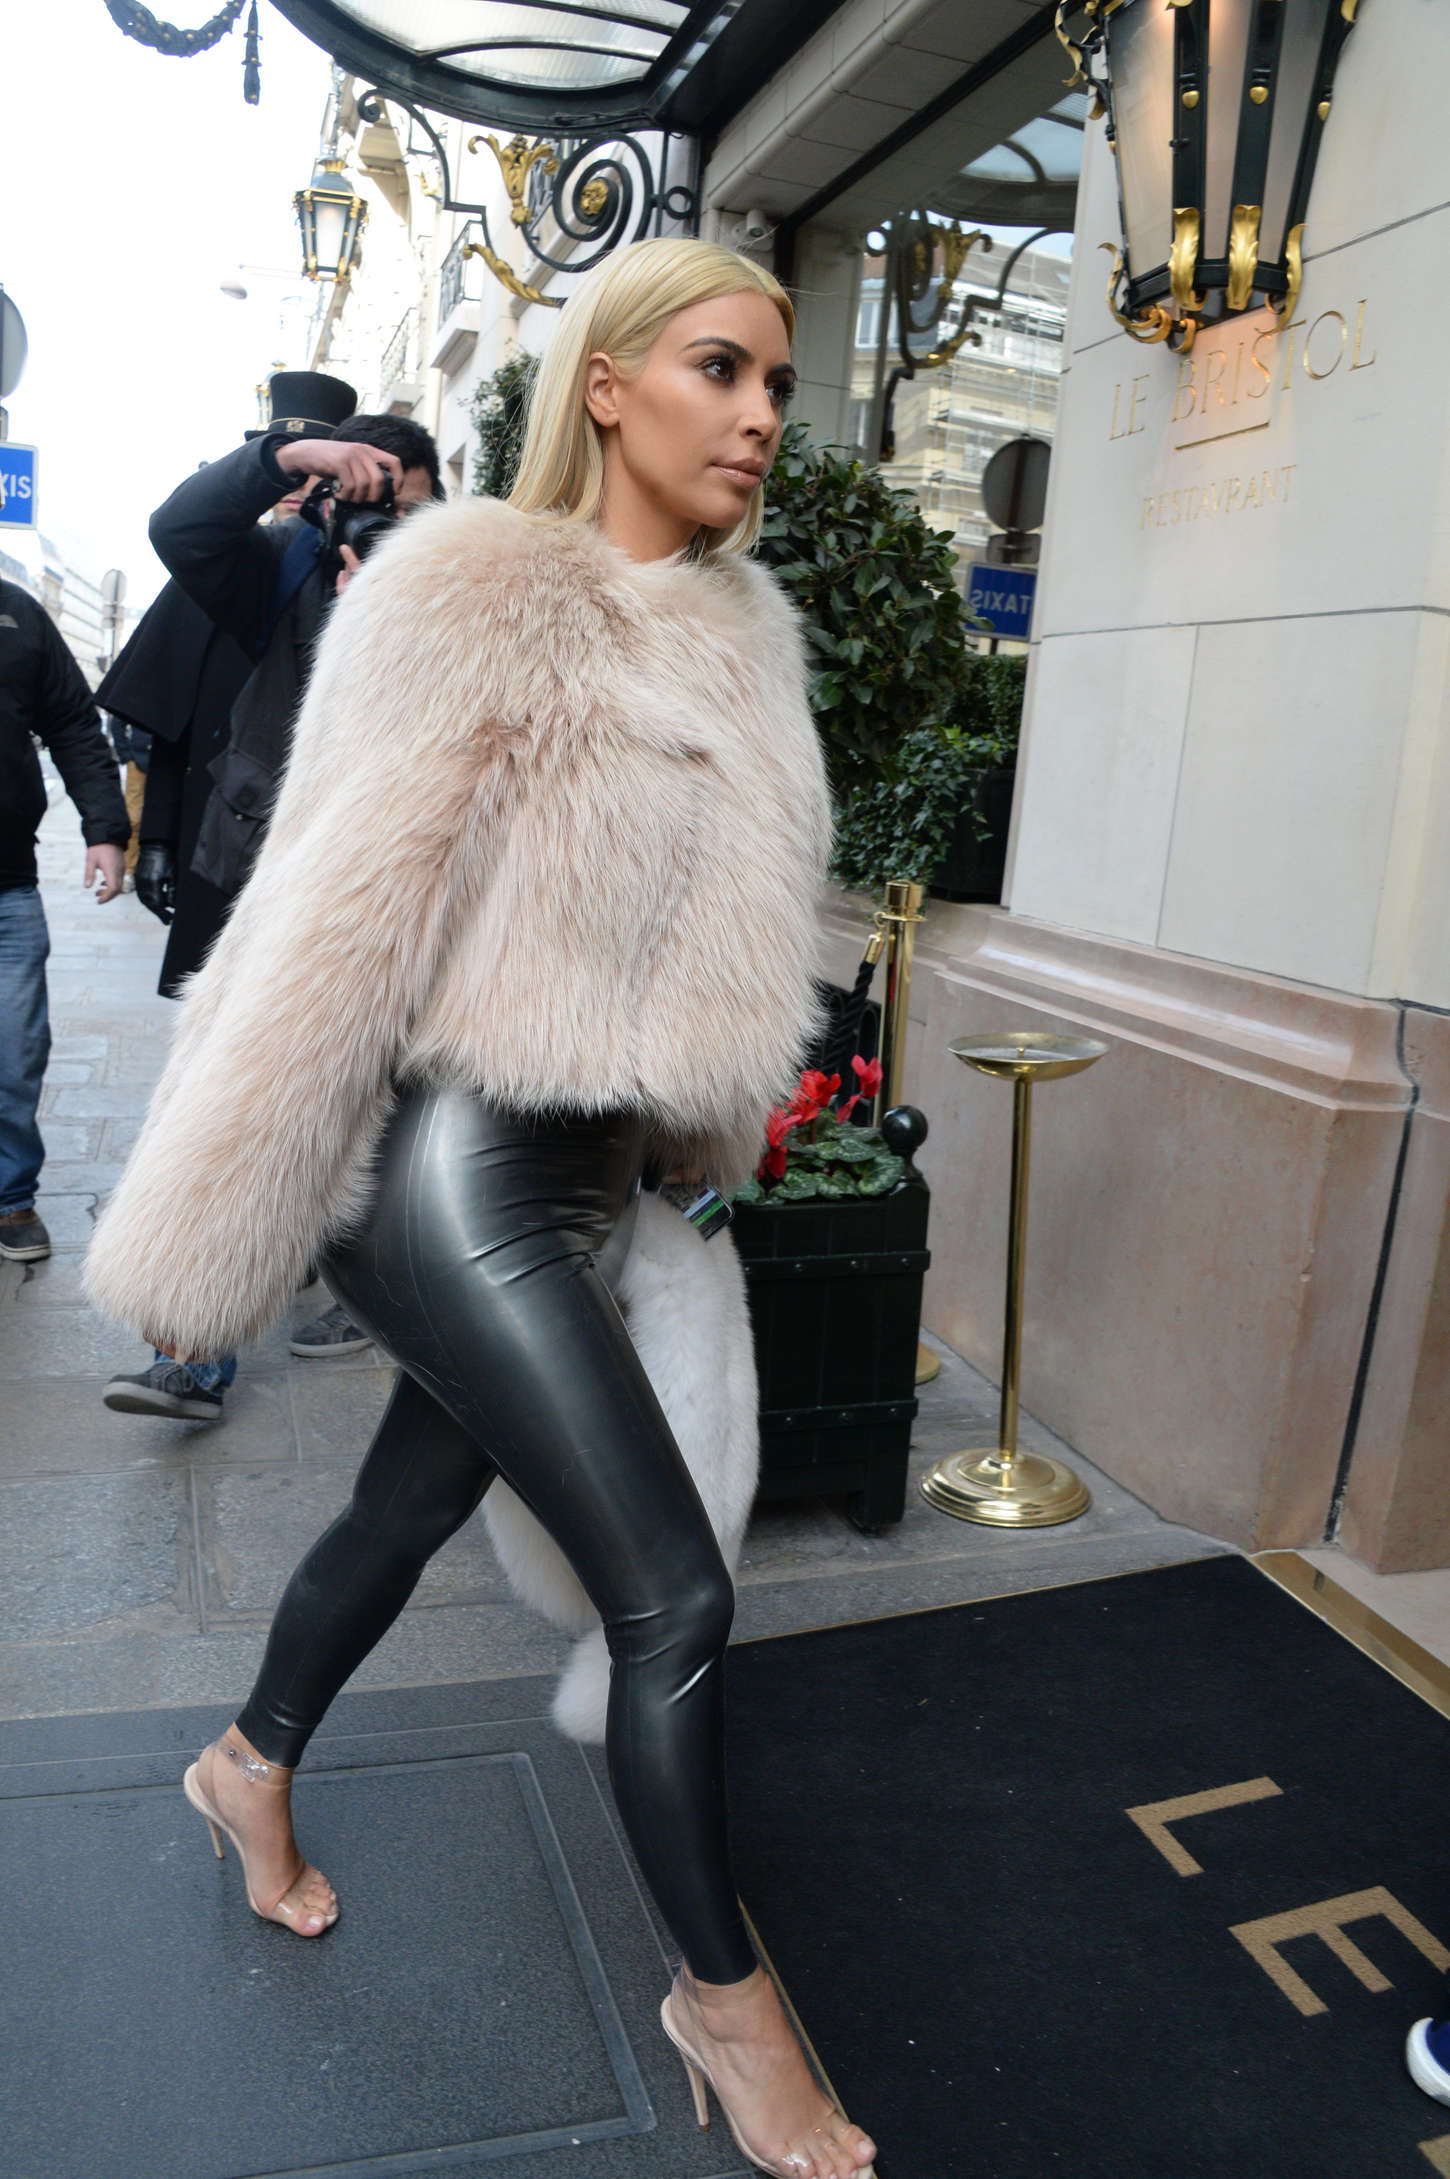 Watch The 9 Gigi Hadid Outfits Everyone Can Afford video